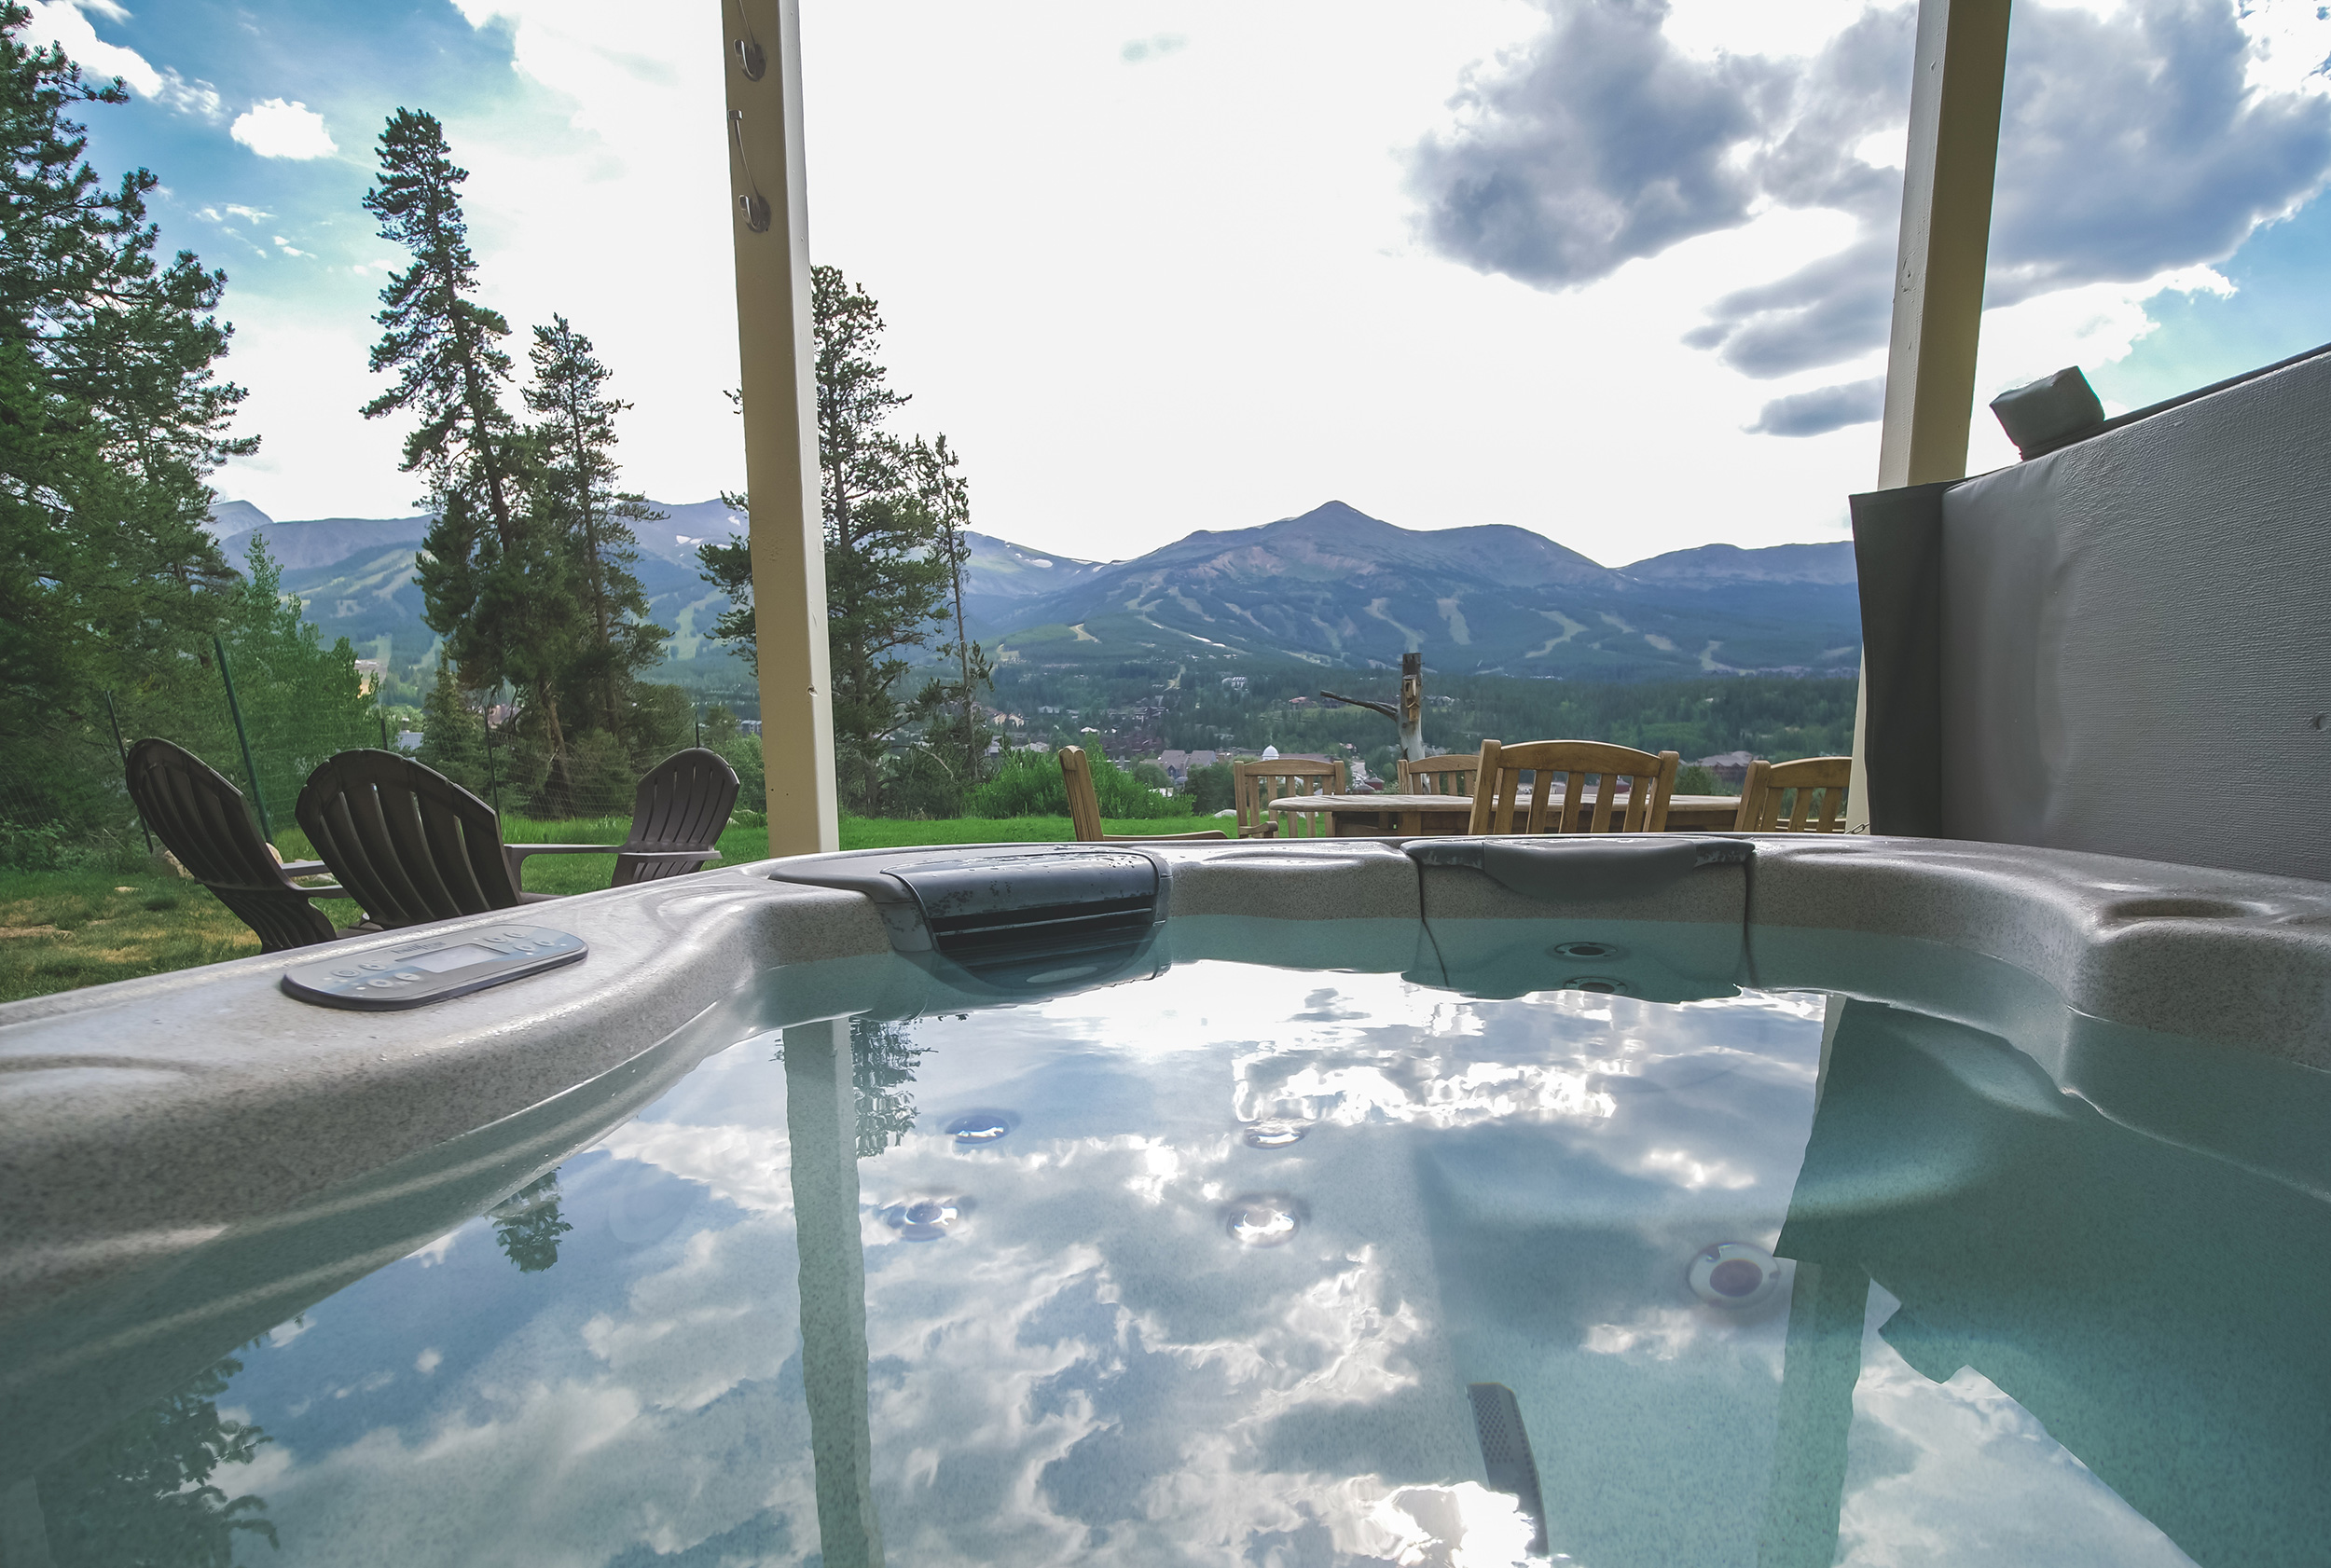 About Us - As a leading provider in hot tub service, repairs, and spa sales, we take pride in offering the best hot tub service in Summit County. We are dedicated to serving the needs of our customers each and every day.